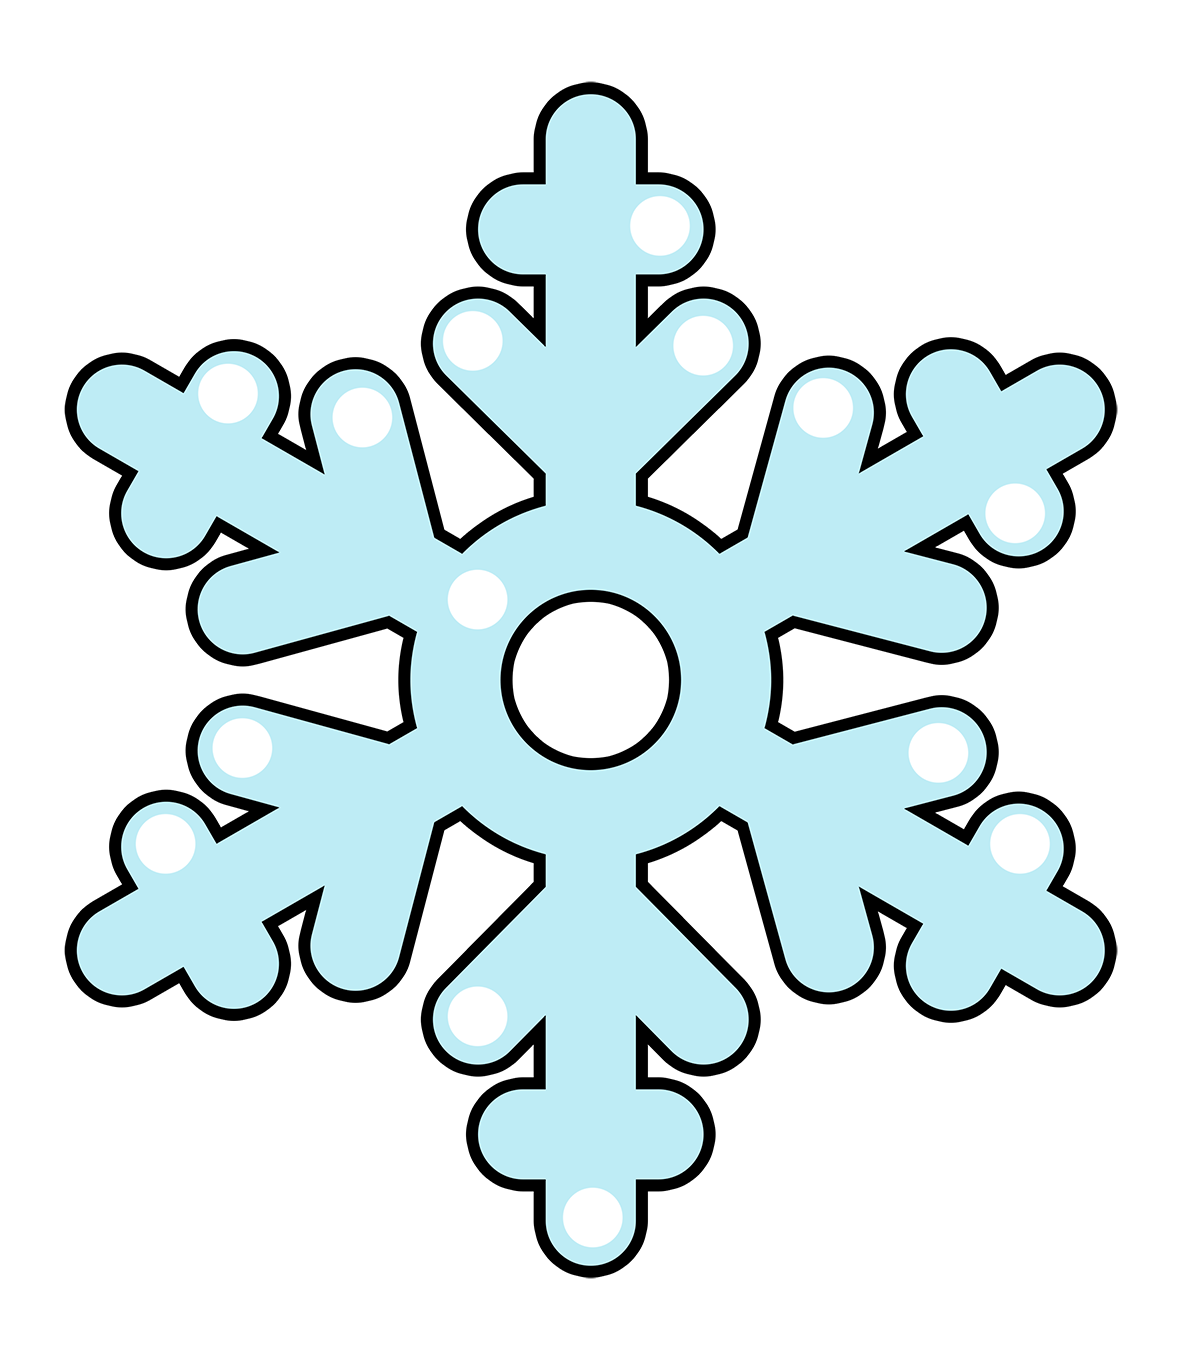 use this clip art whenever you are required to show an image of a rh pinterest com snowflake clipart transparent background snowflake clipart background